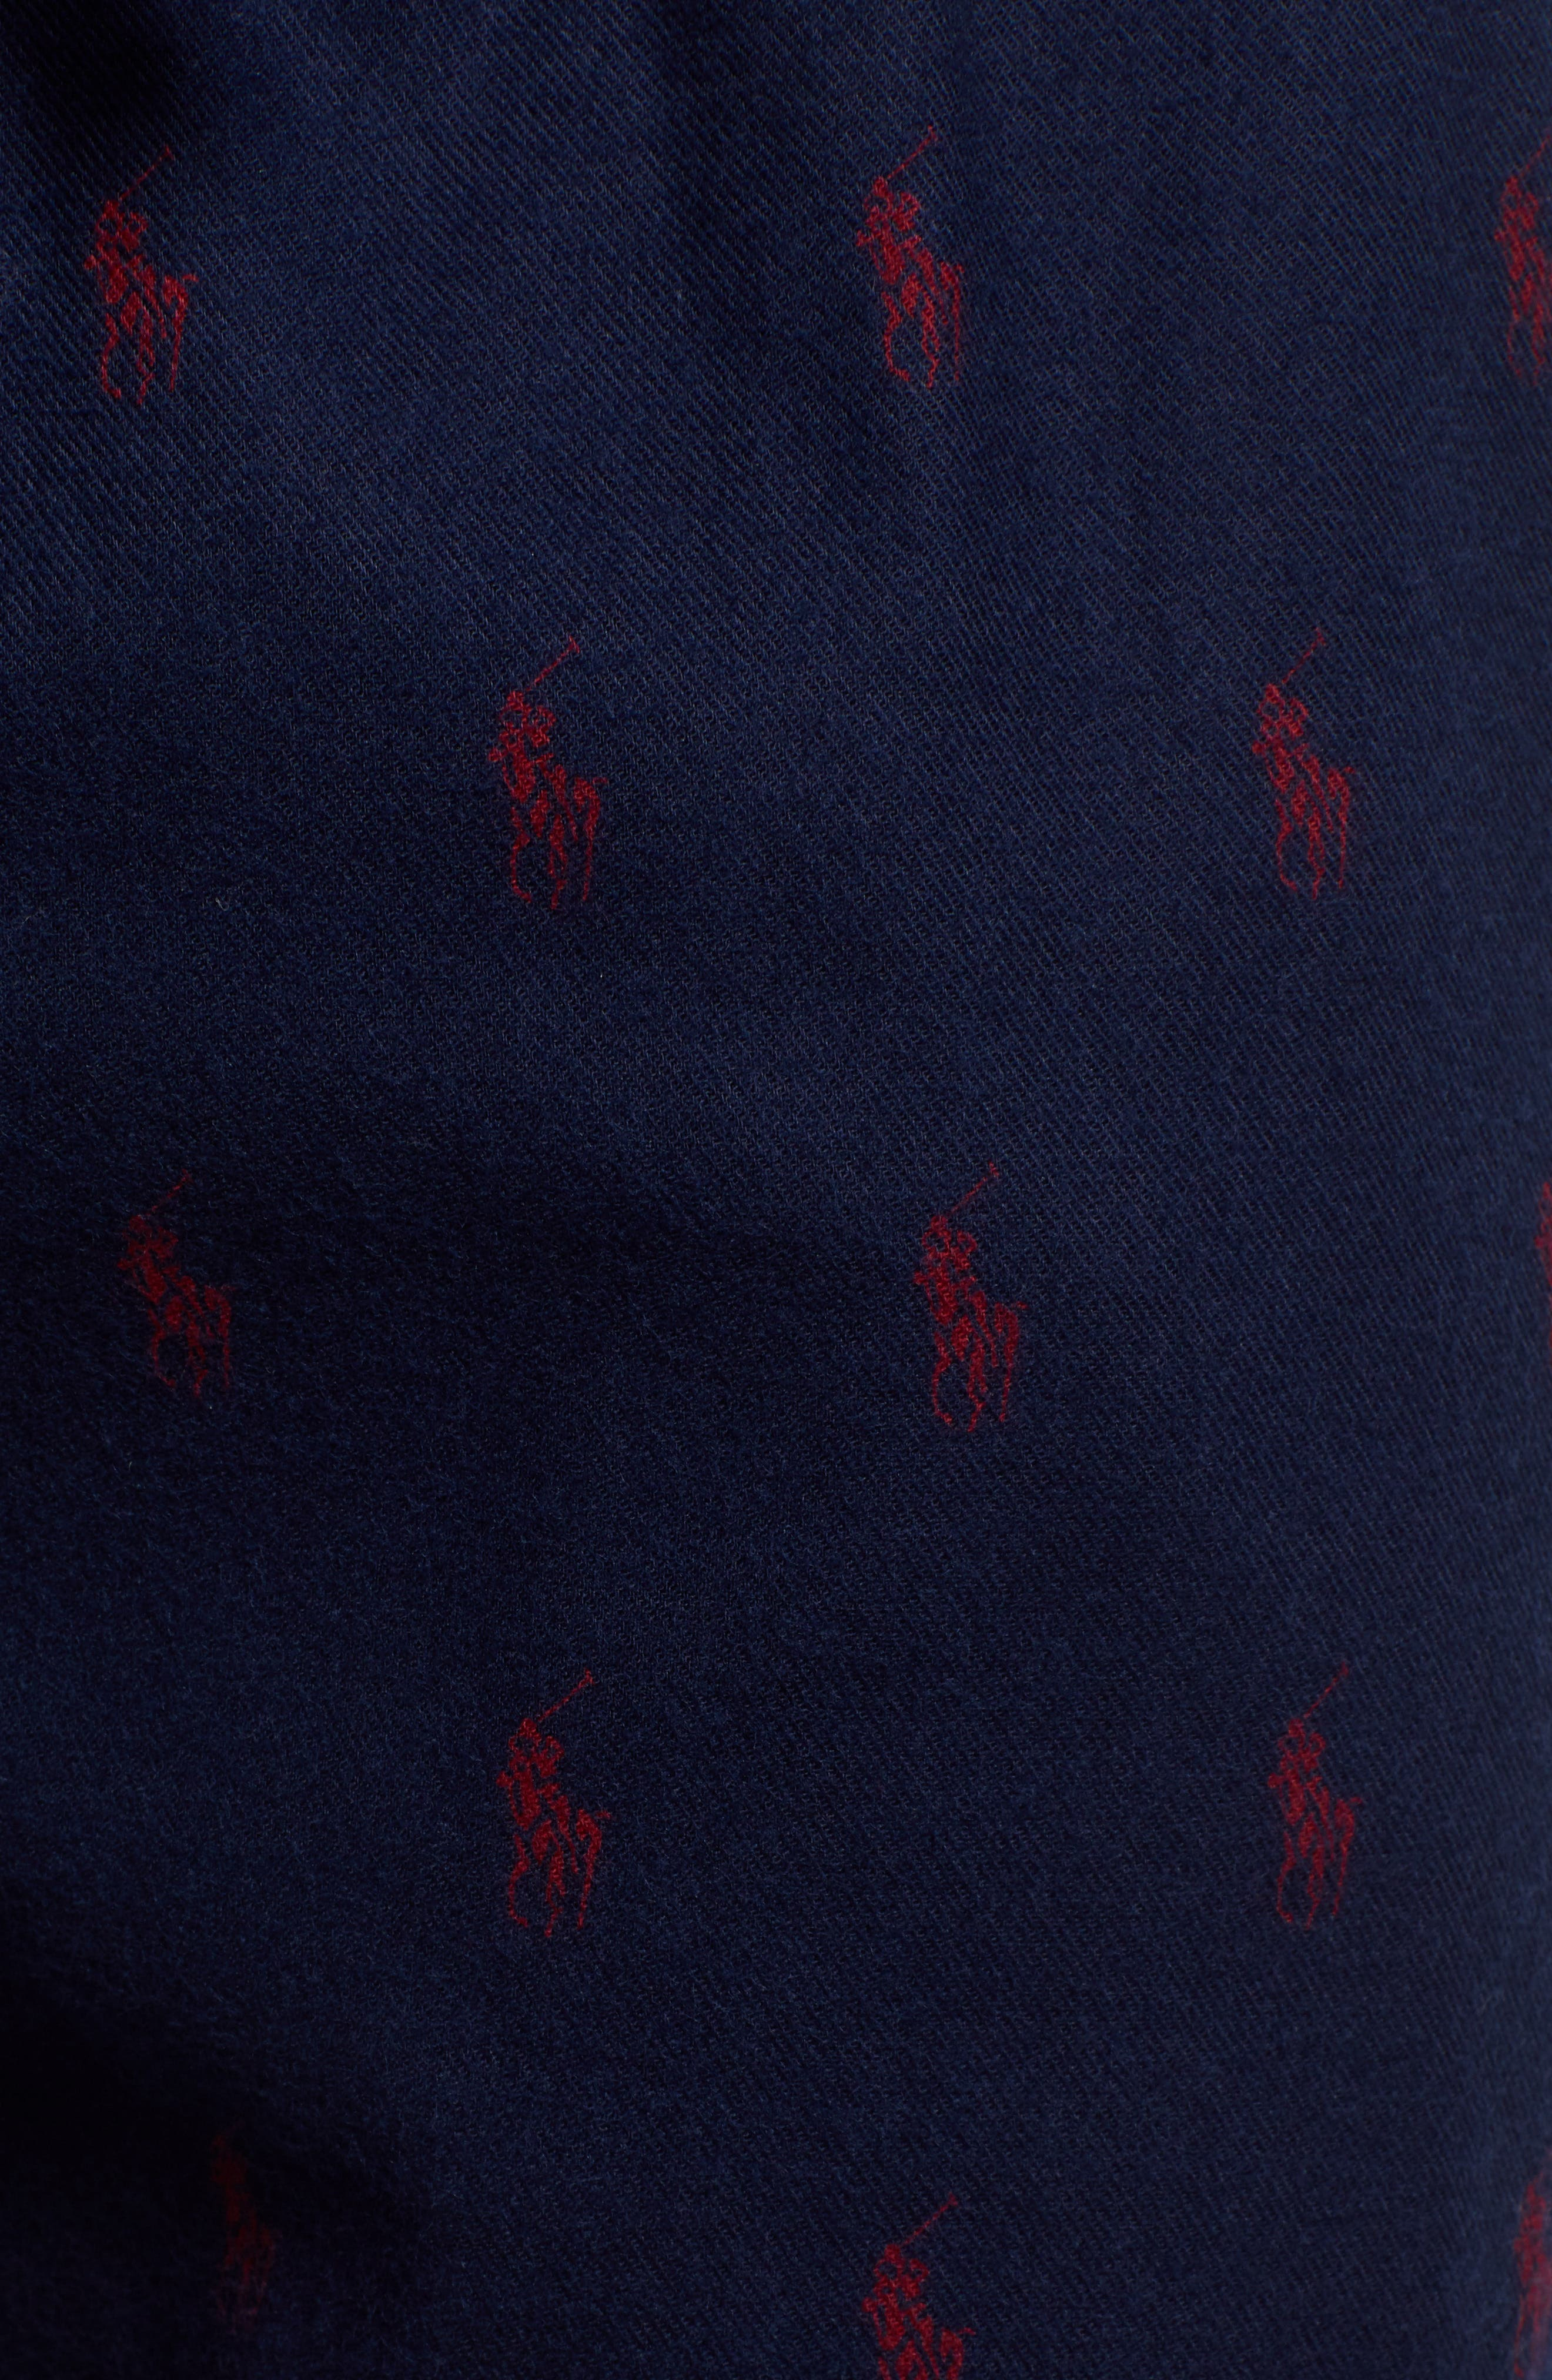 POLO RALPH LAUREN, Flannel Cotton Jogger Pants, Alternate thumbnail 5, color, CRUISE NAVY/ HOLIDAY RED